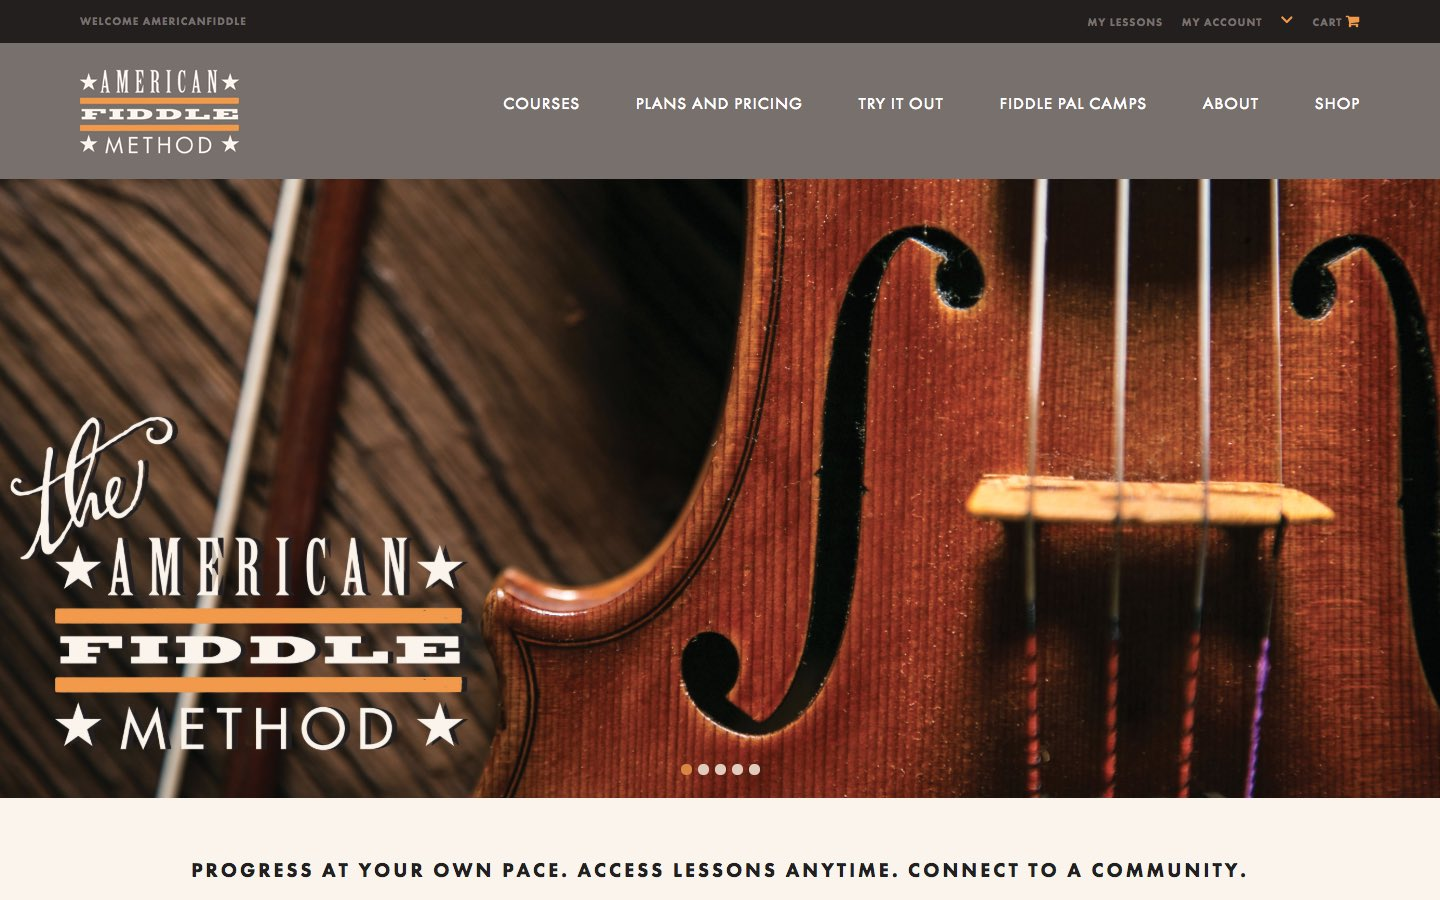 American Fiddle Method - Website - 1